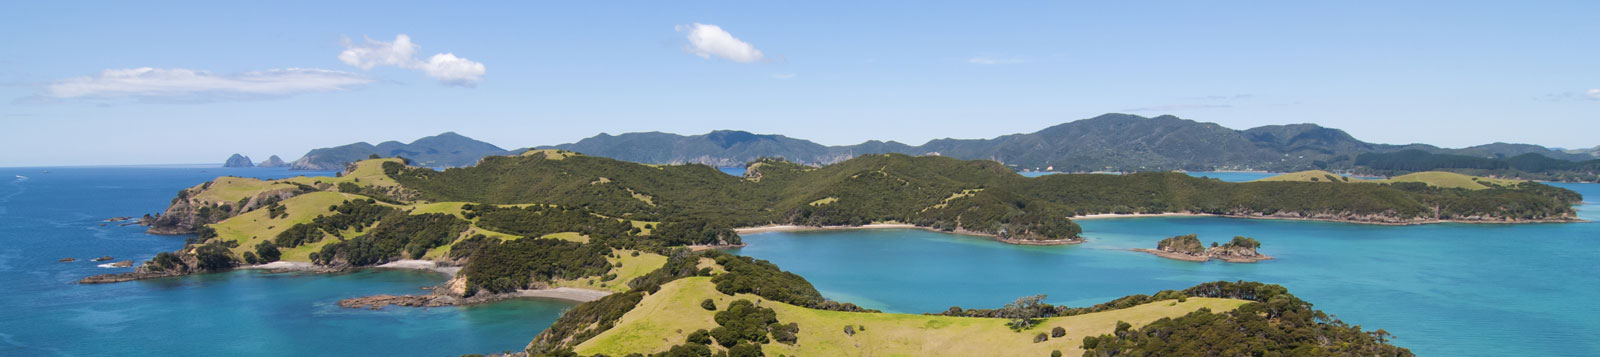 Yacht Charter Bay of Islands, Private and Luxury Yacht Charter Australia and New Zealand